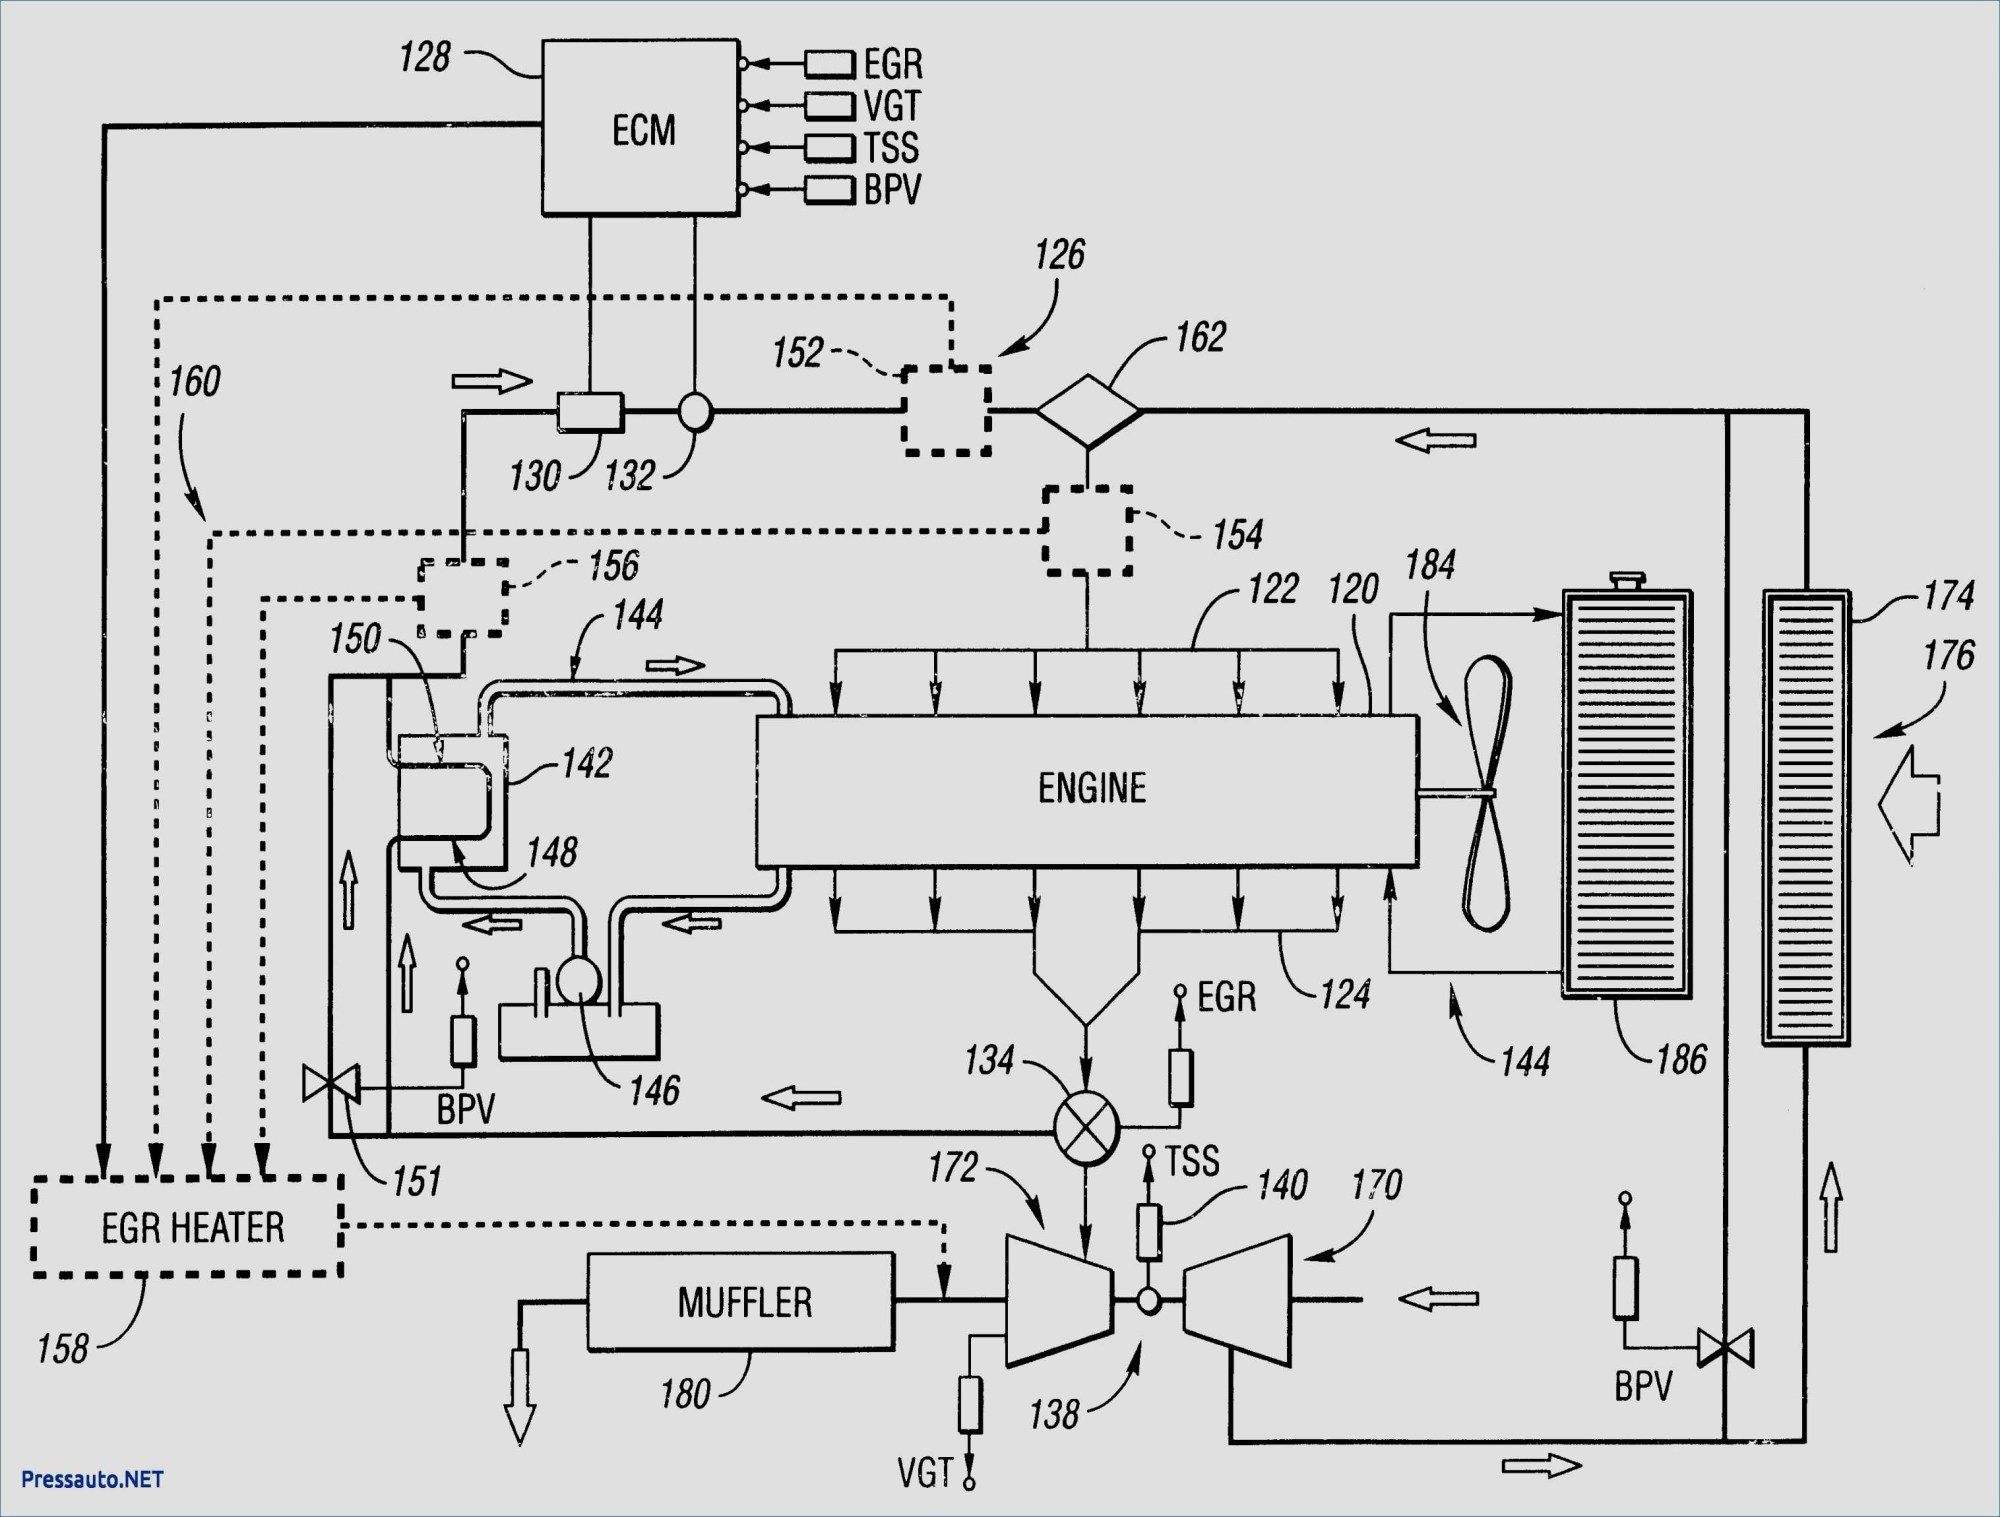 hight resolution of trane rooftop unit wiring diagrams wiring diagram explained trane voyager wiring diagram